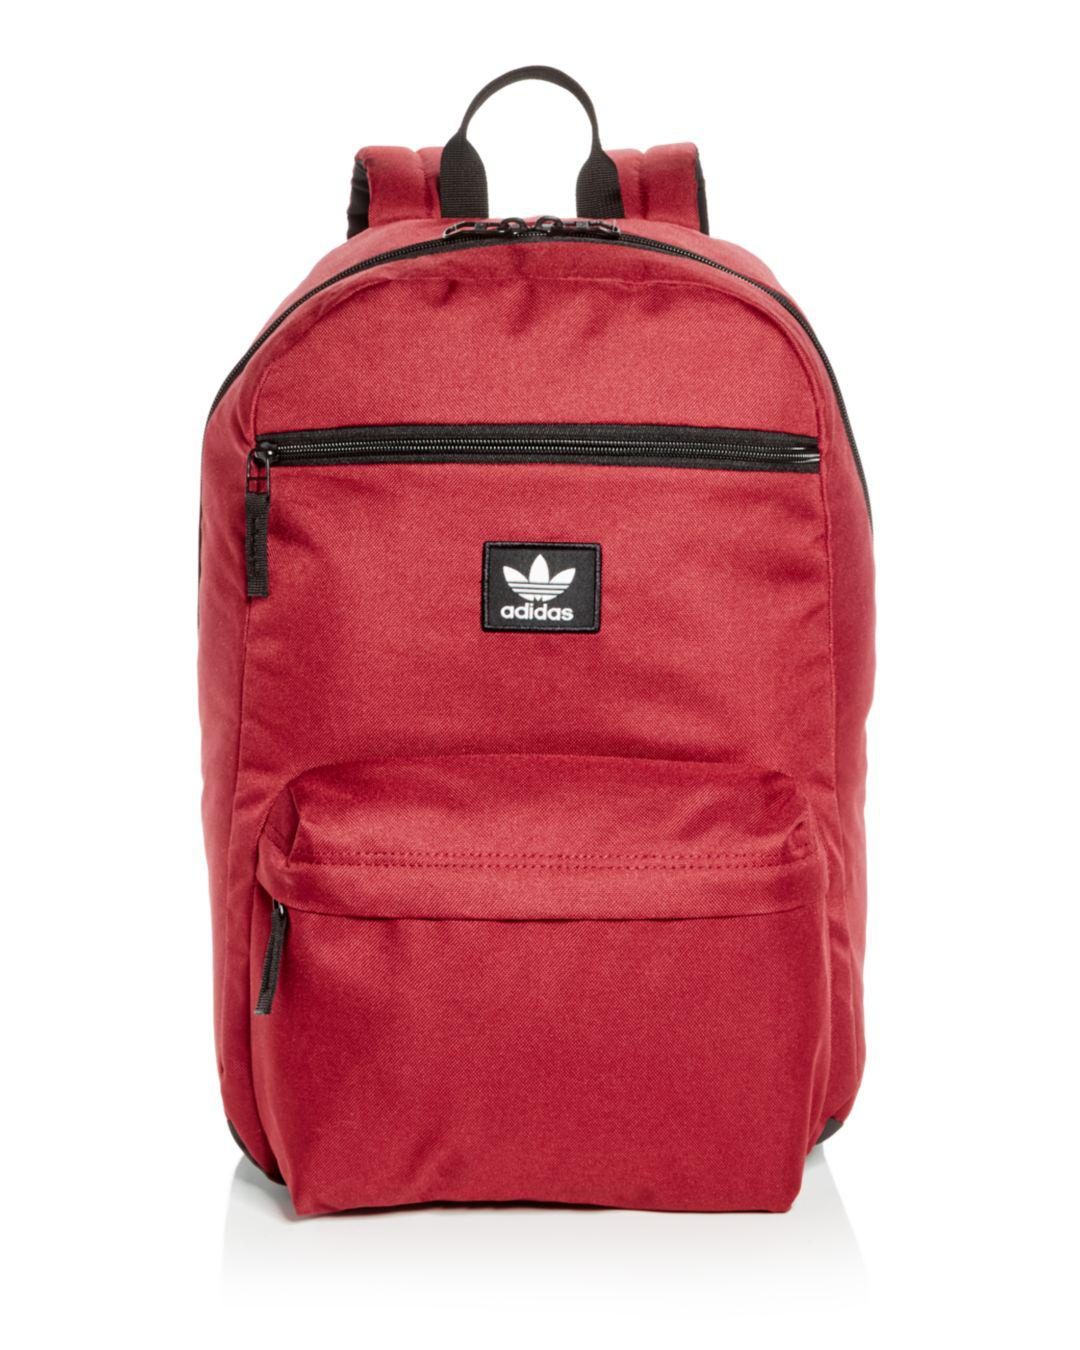 cd4a9e12ef Adidas - Multicolor Originals National Backpack for Men - Lyst. View  fullscreen